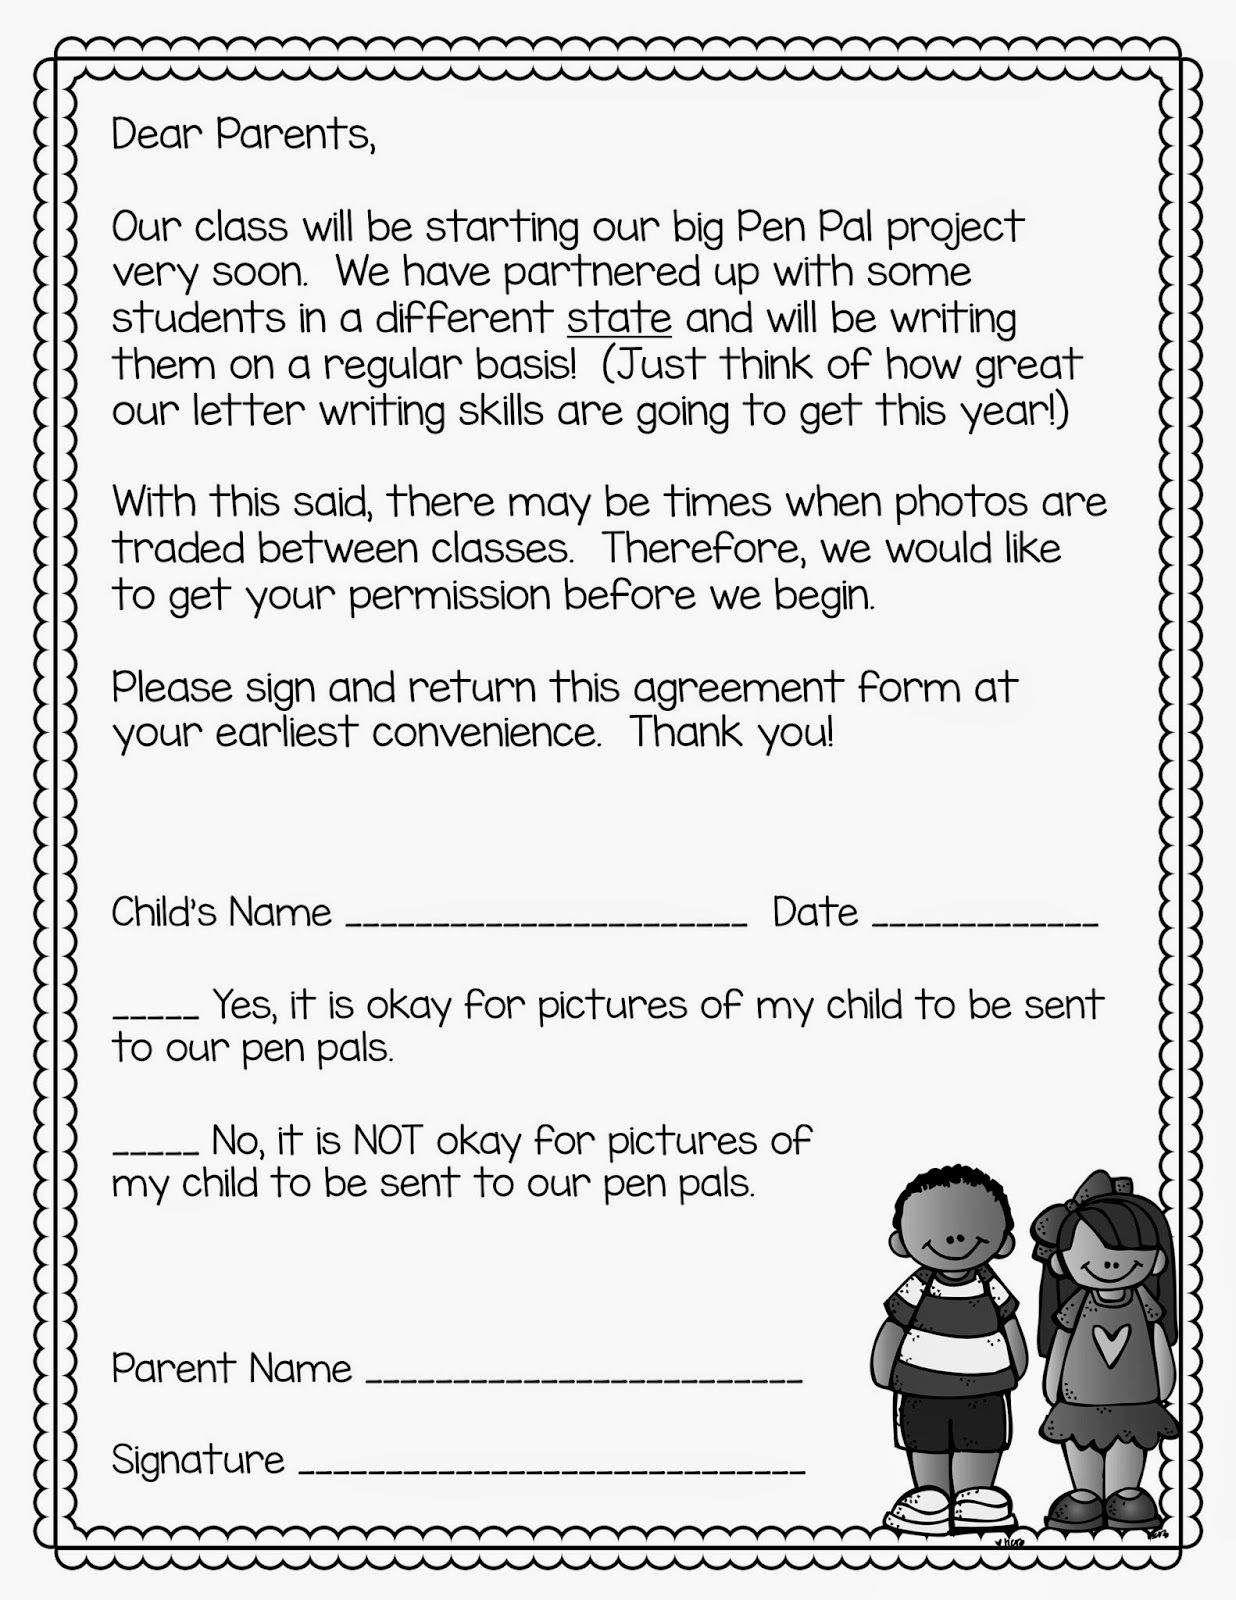 Writing pen pals